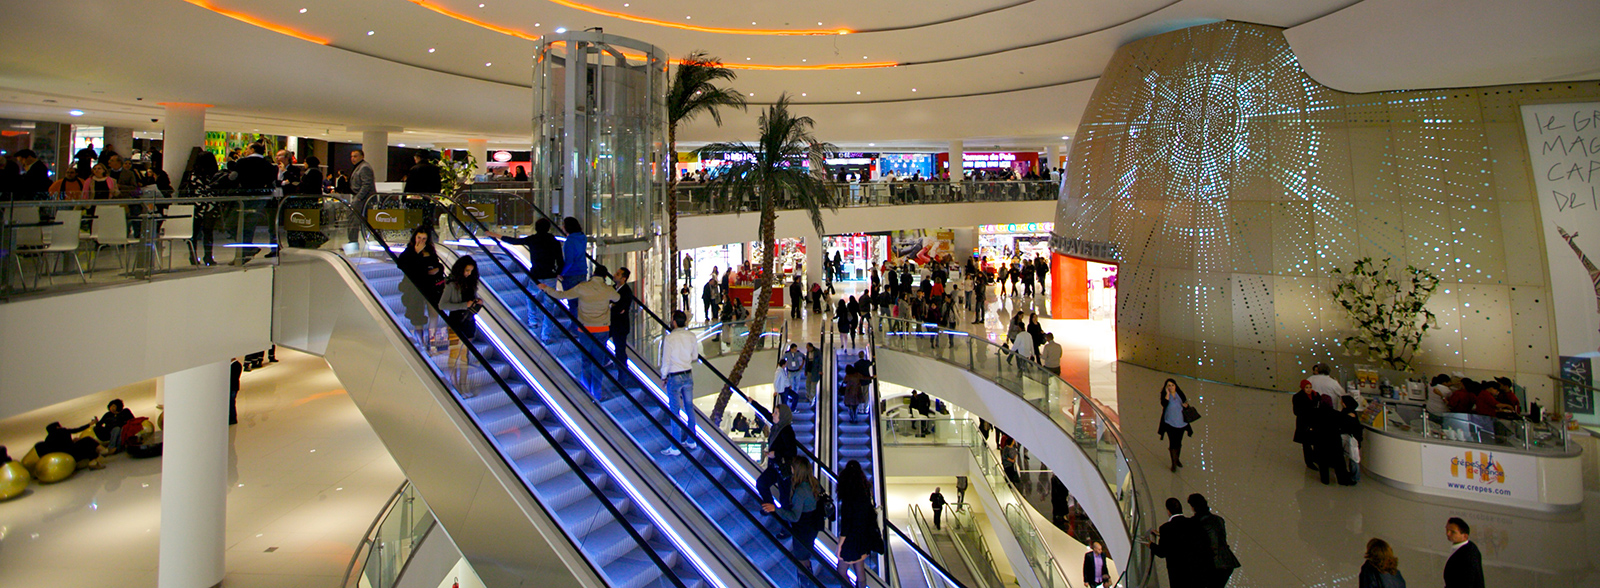 morocco mall in casablnca is a good place for your luxury shopping